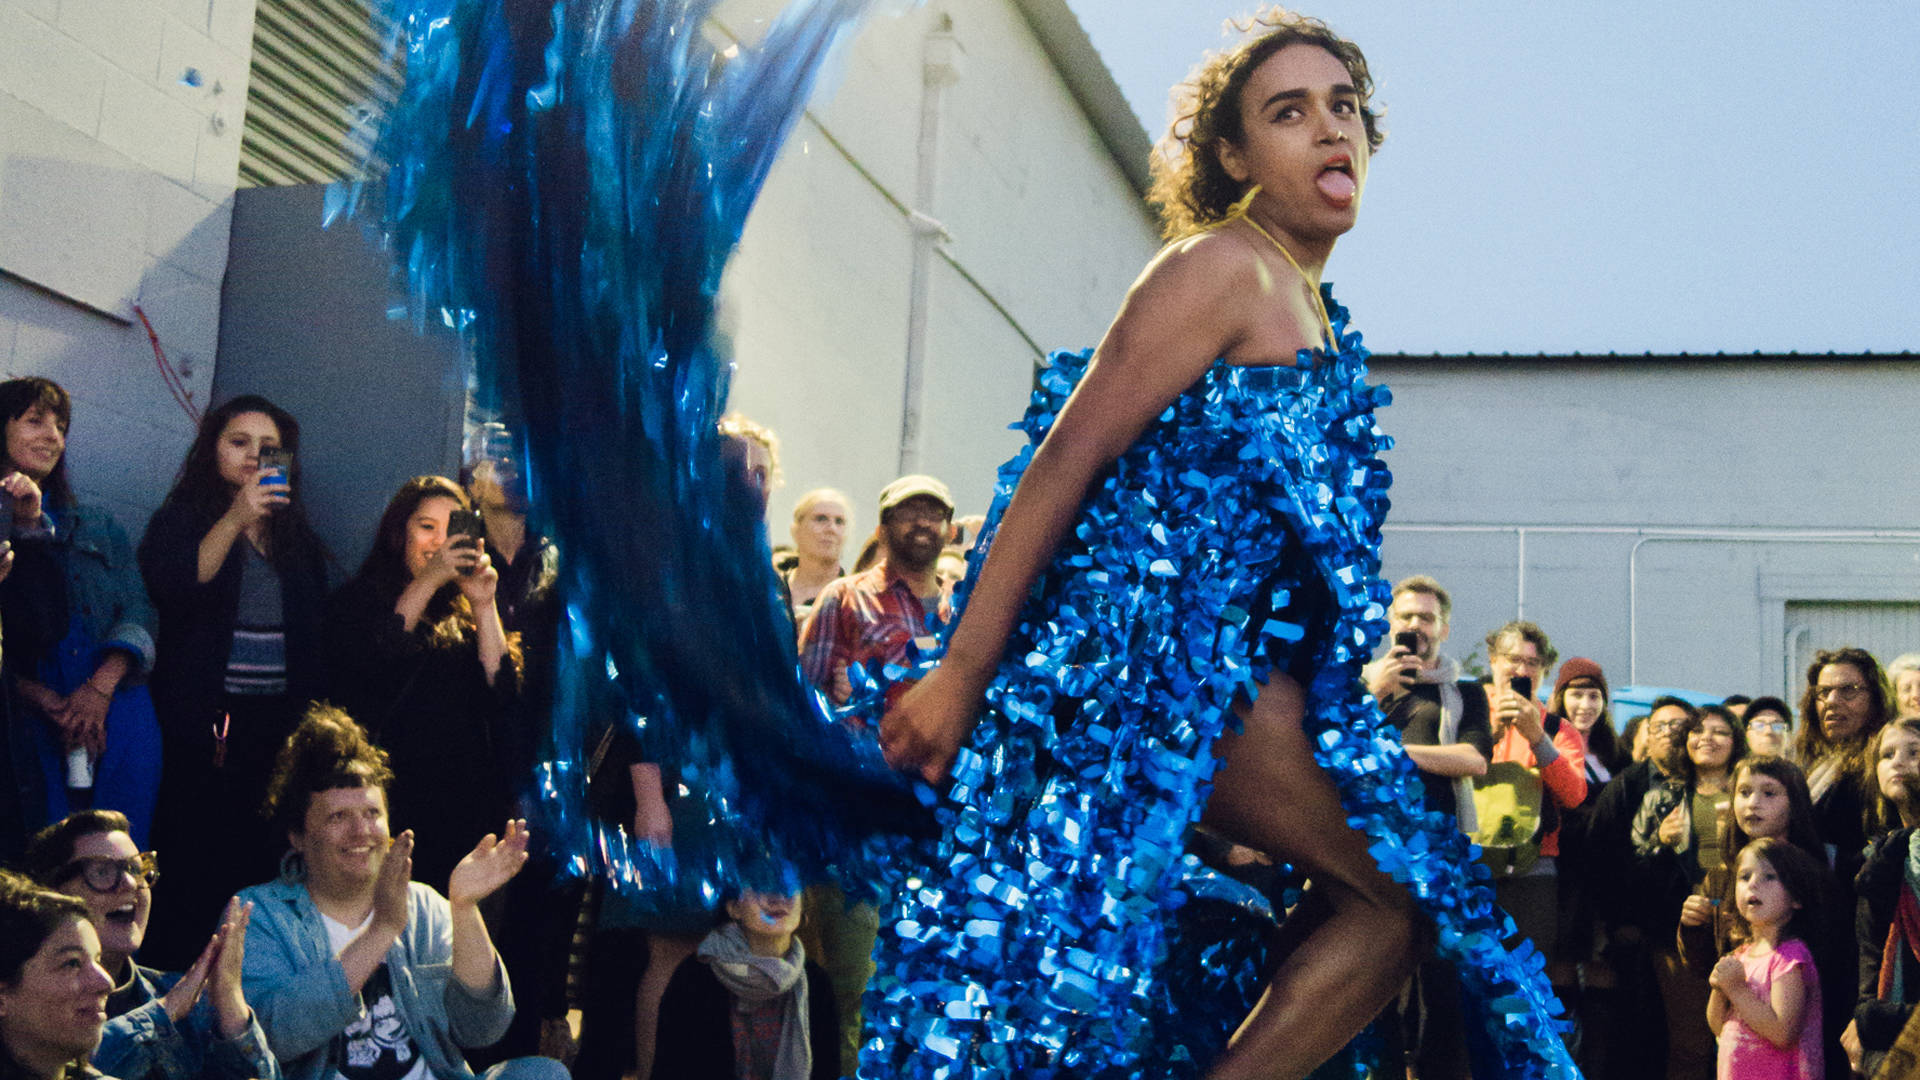 A model in BONANZA's fashion show, 'The Young and Restless' at Recology on Sept. 21, 2018. Courtesy of the artists